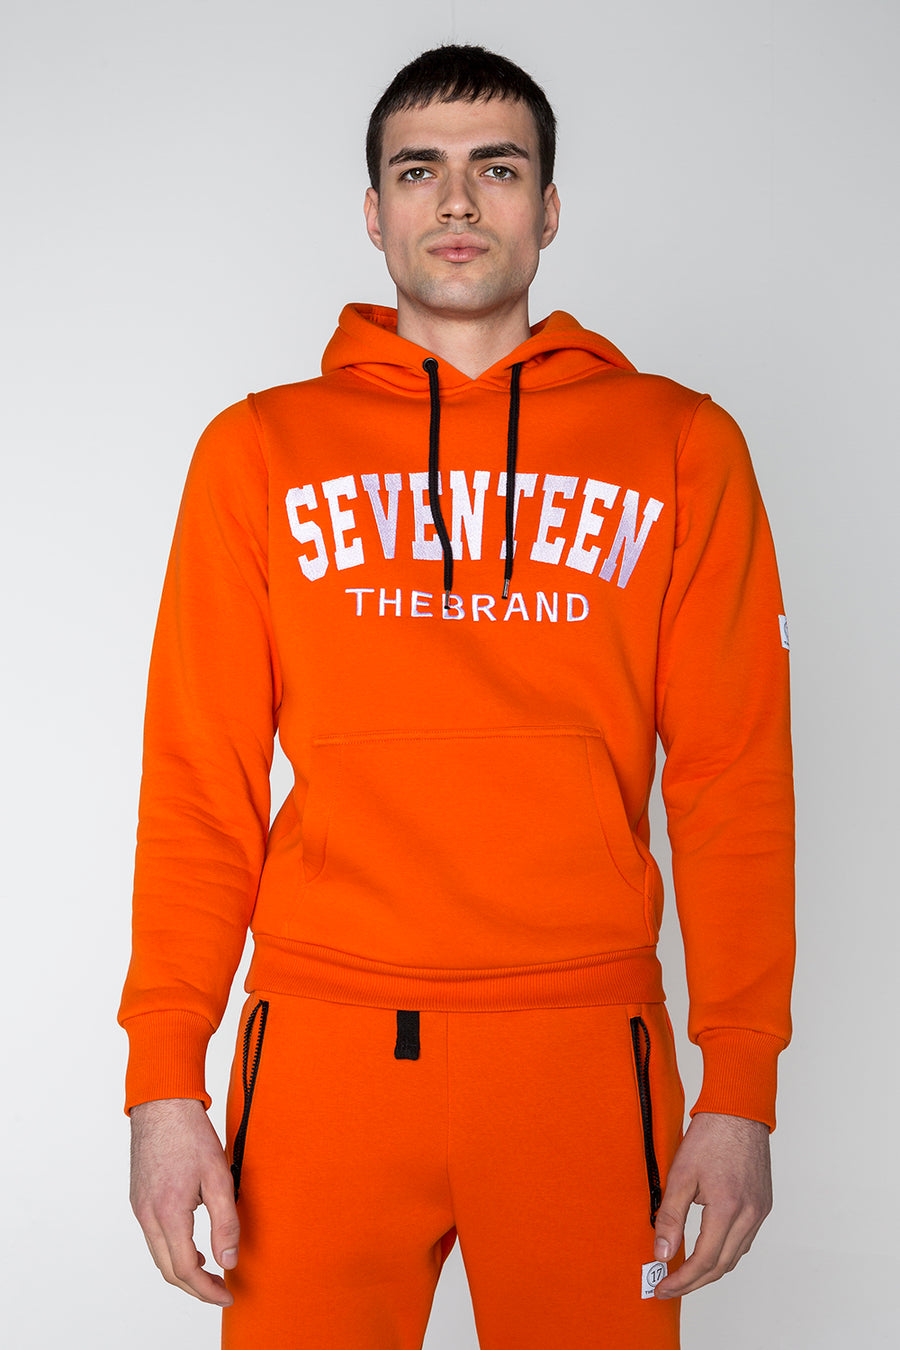 Seventeenthebrand Embroidery Hoodie Orange - Unisex